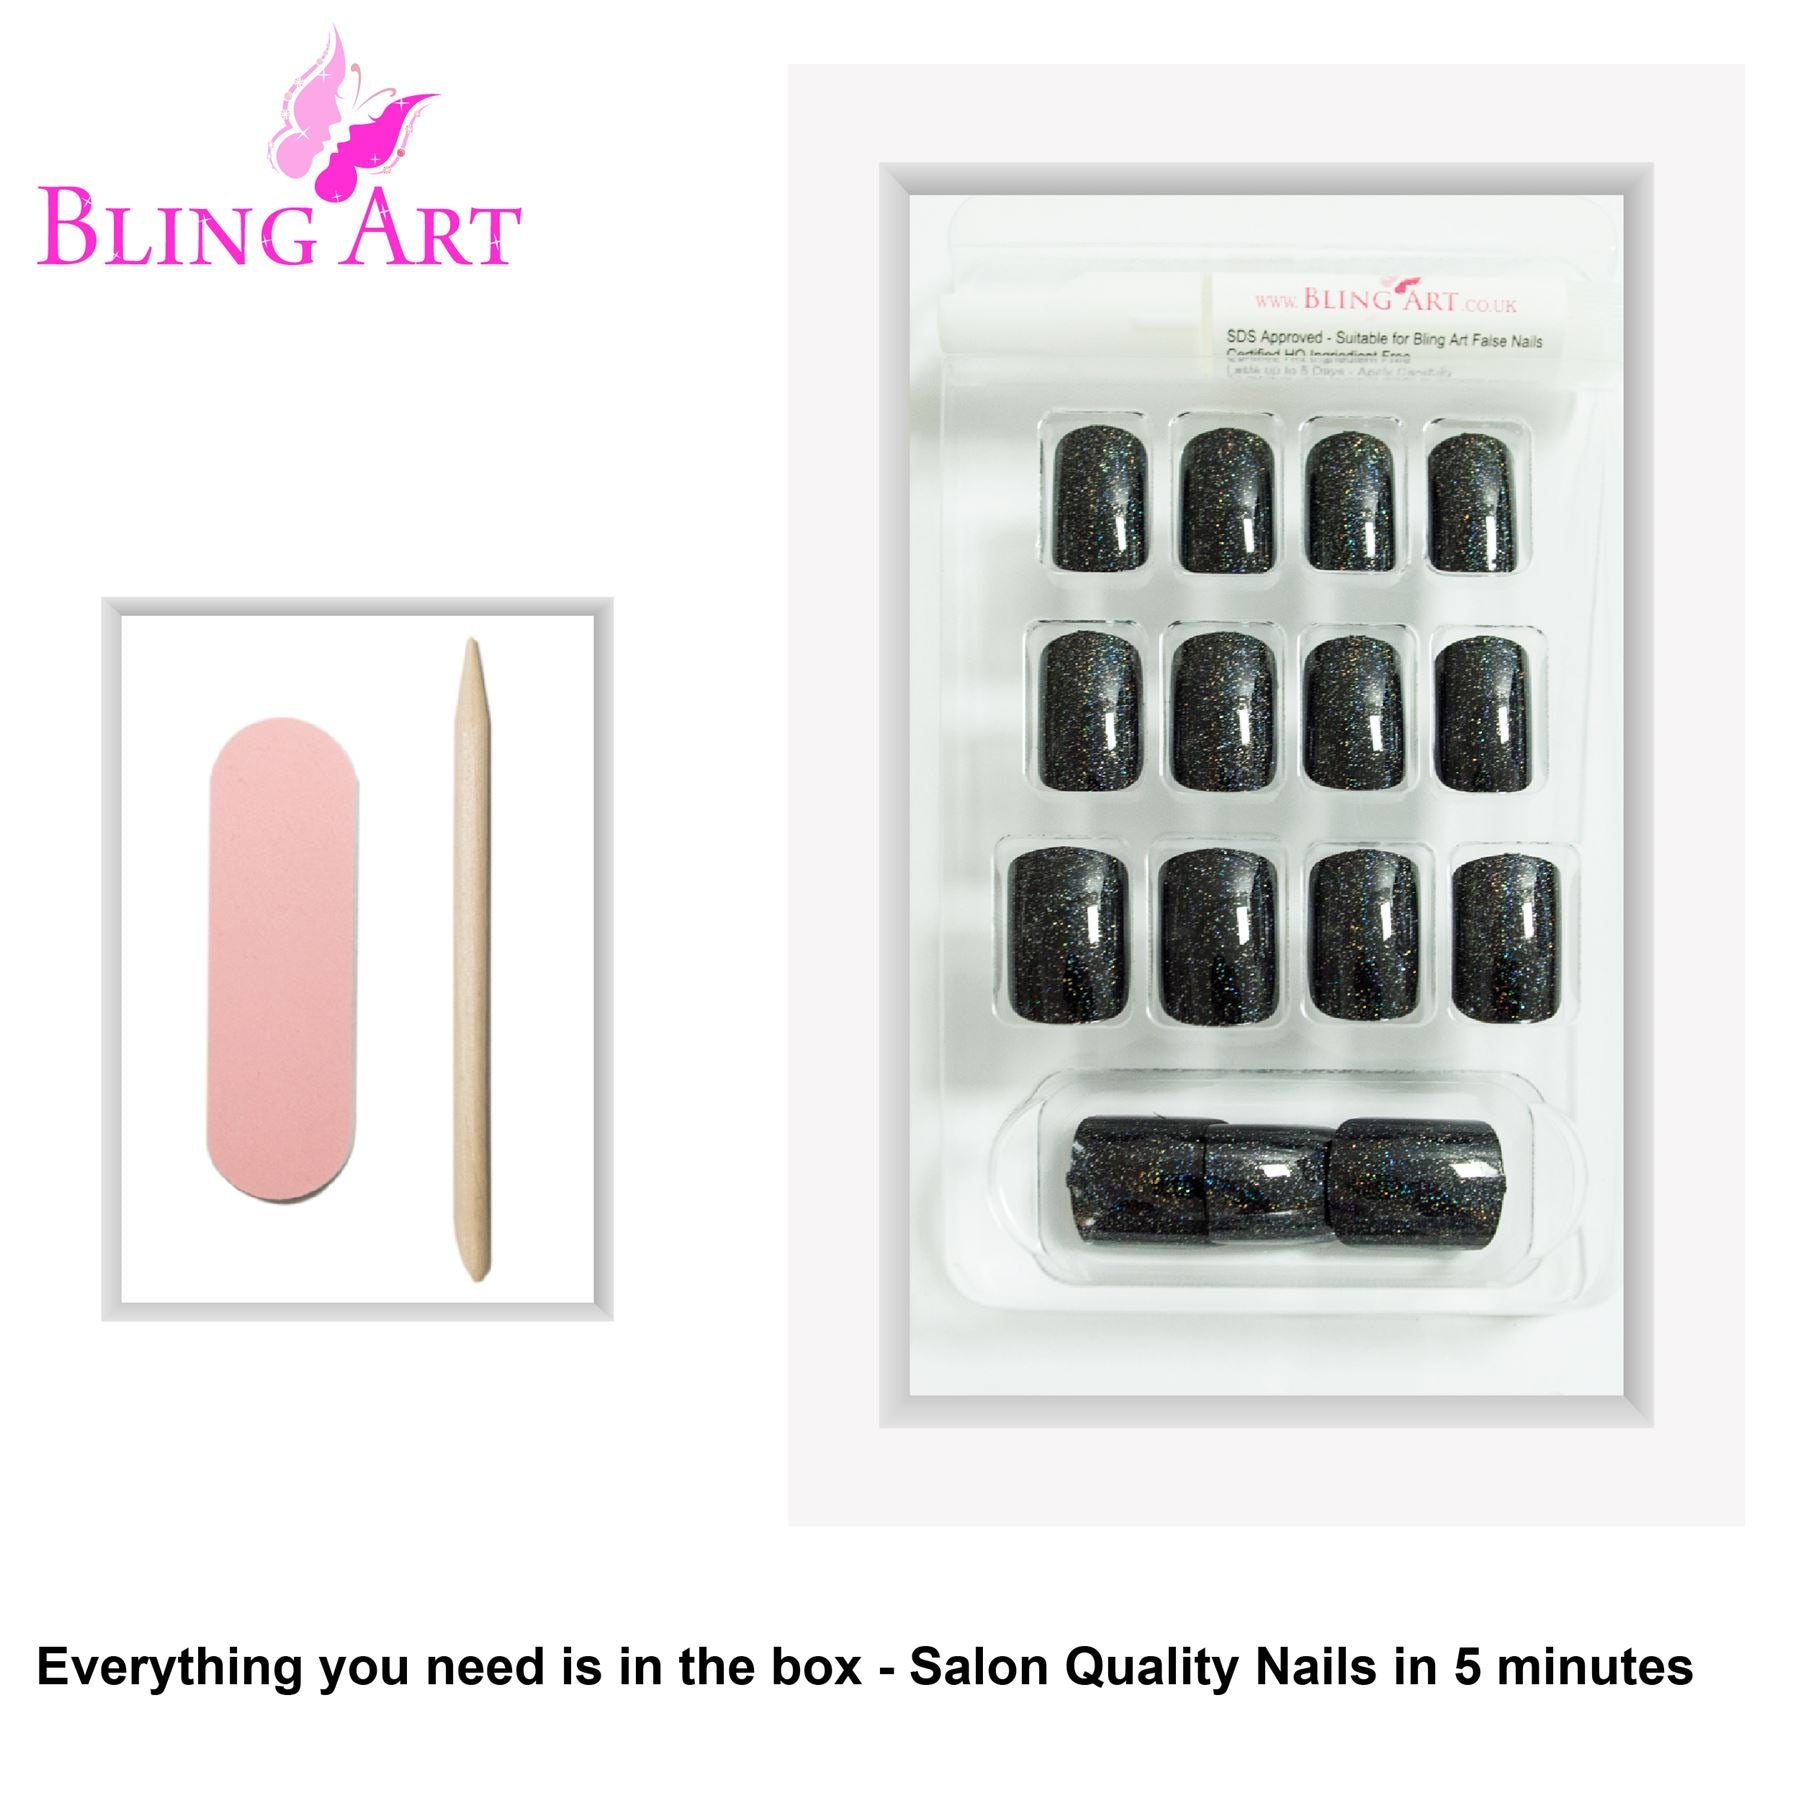 False Nails by Bling Art Black Gel French Squoval 24 Fake Medium Acrylic Tips